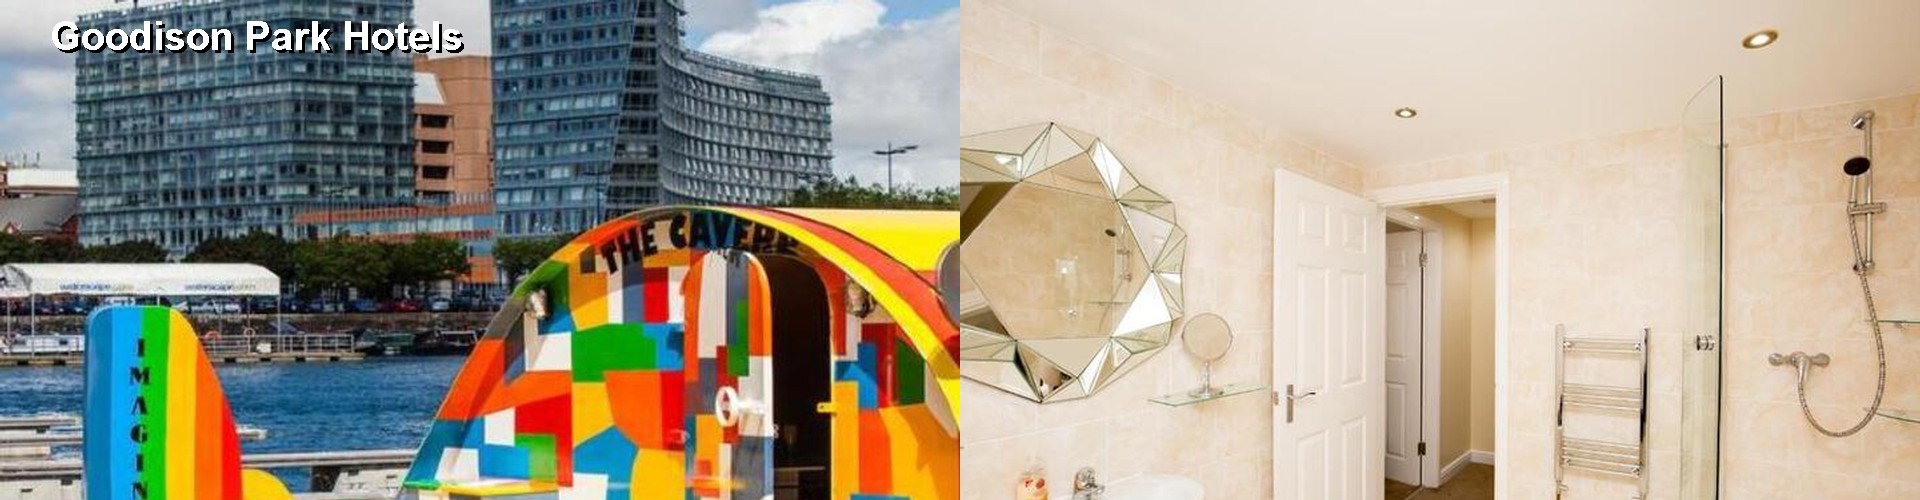 5 Best Hotels near Goodison Park